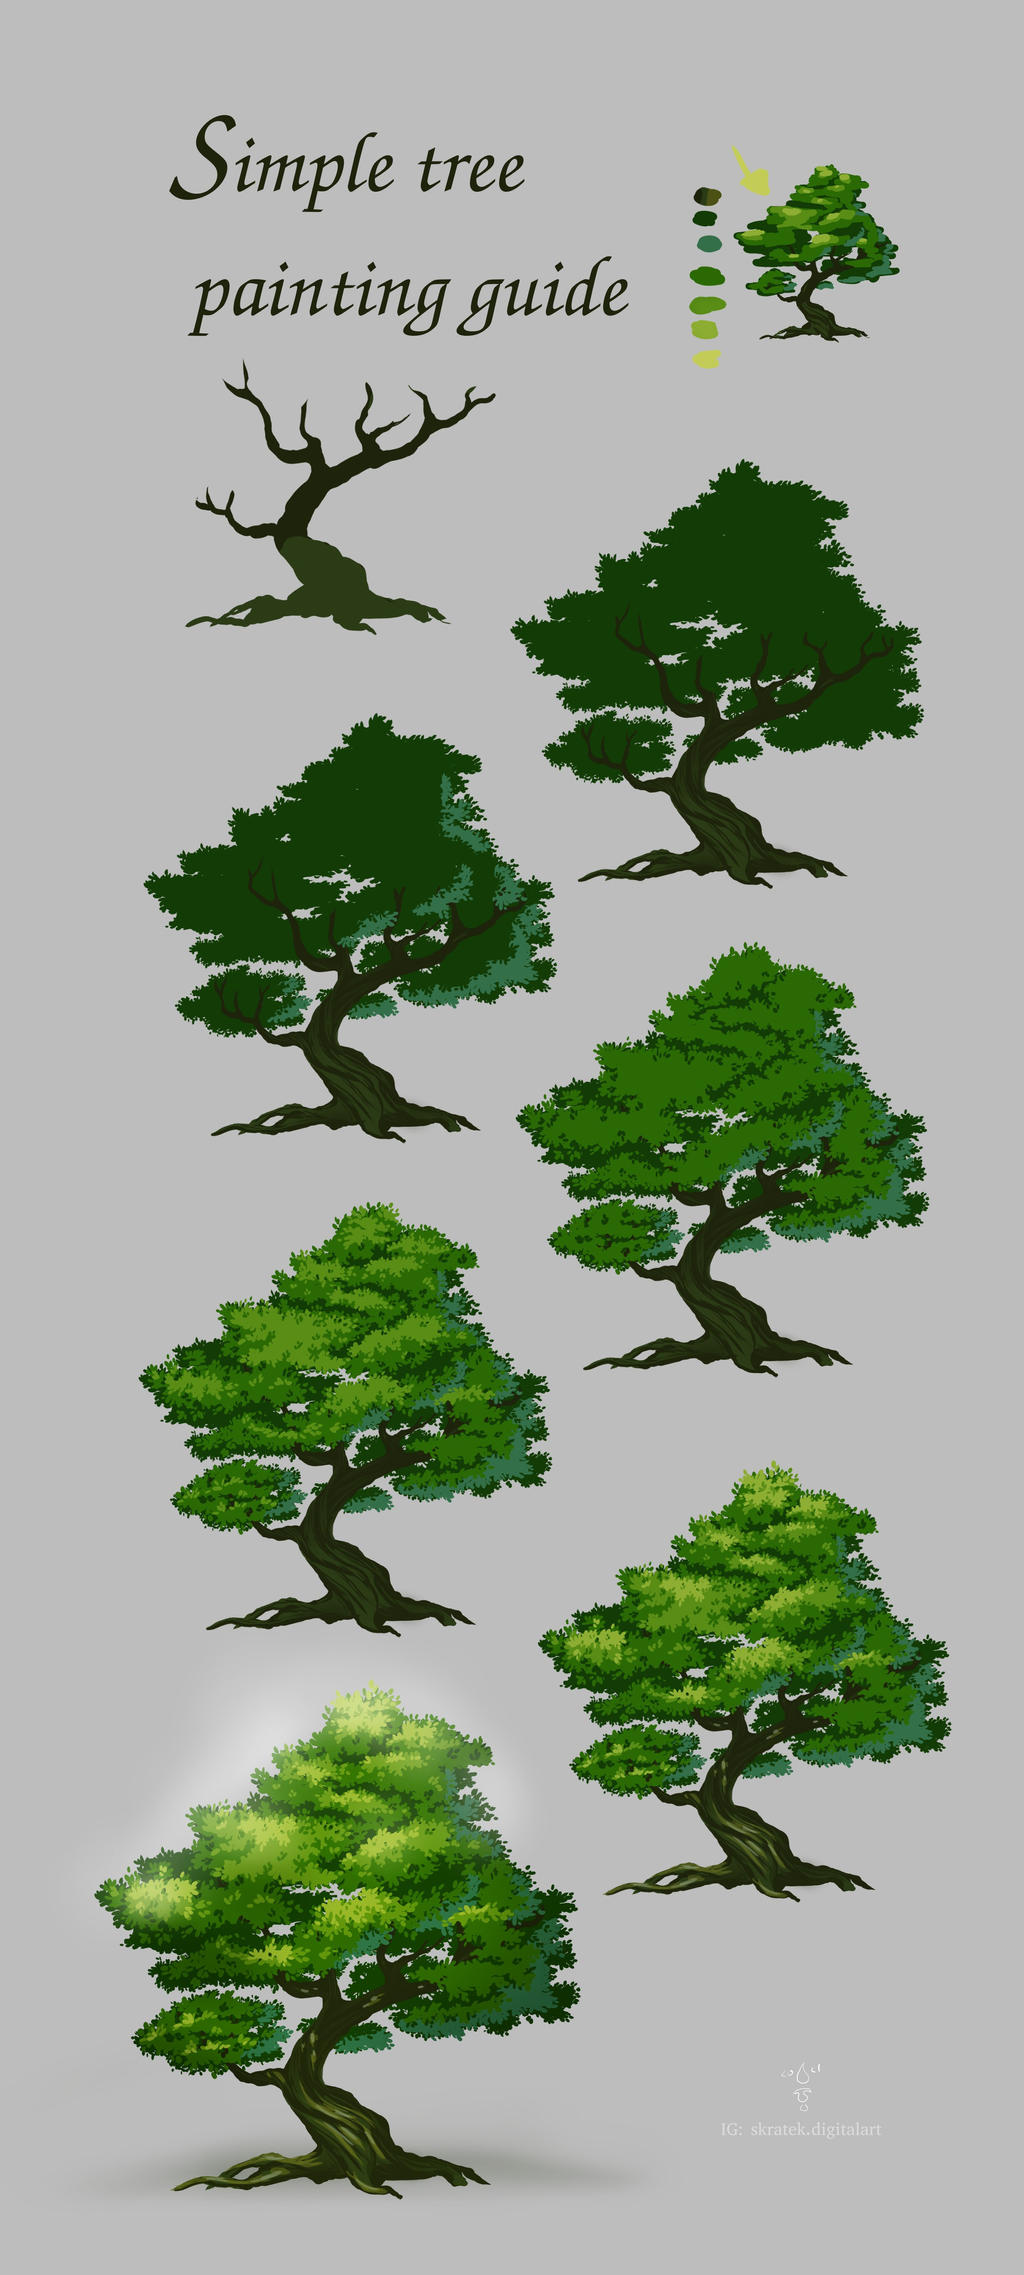 A tree/foliage painting guide